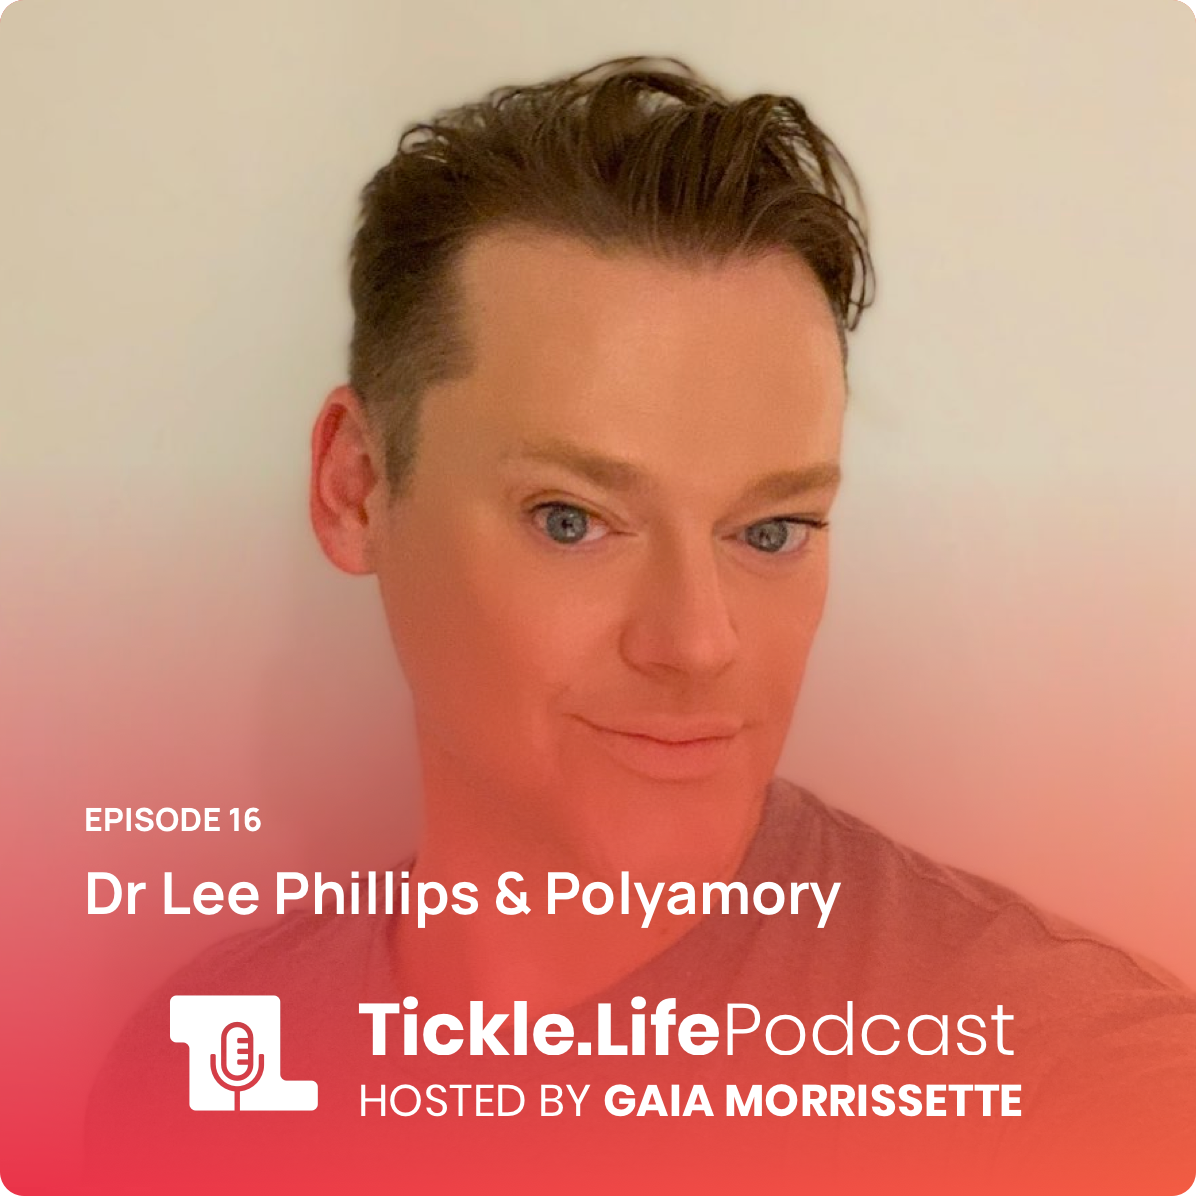 - Dr Lee Phillips & Polyamory